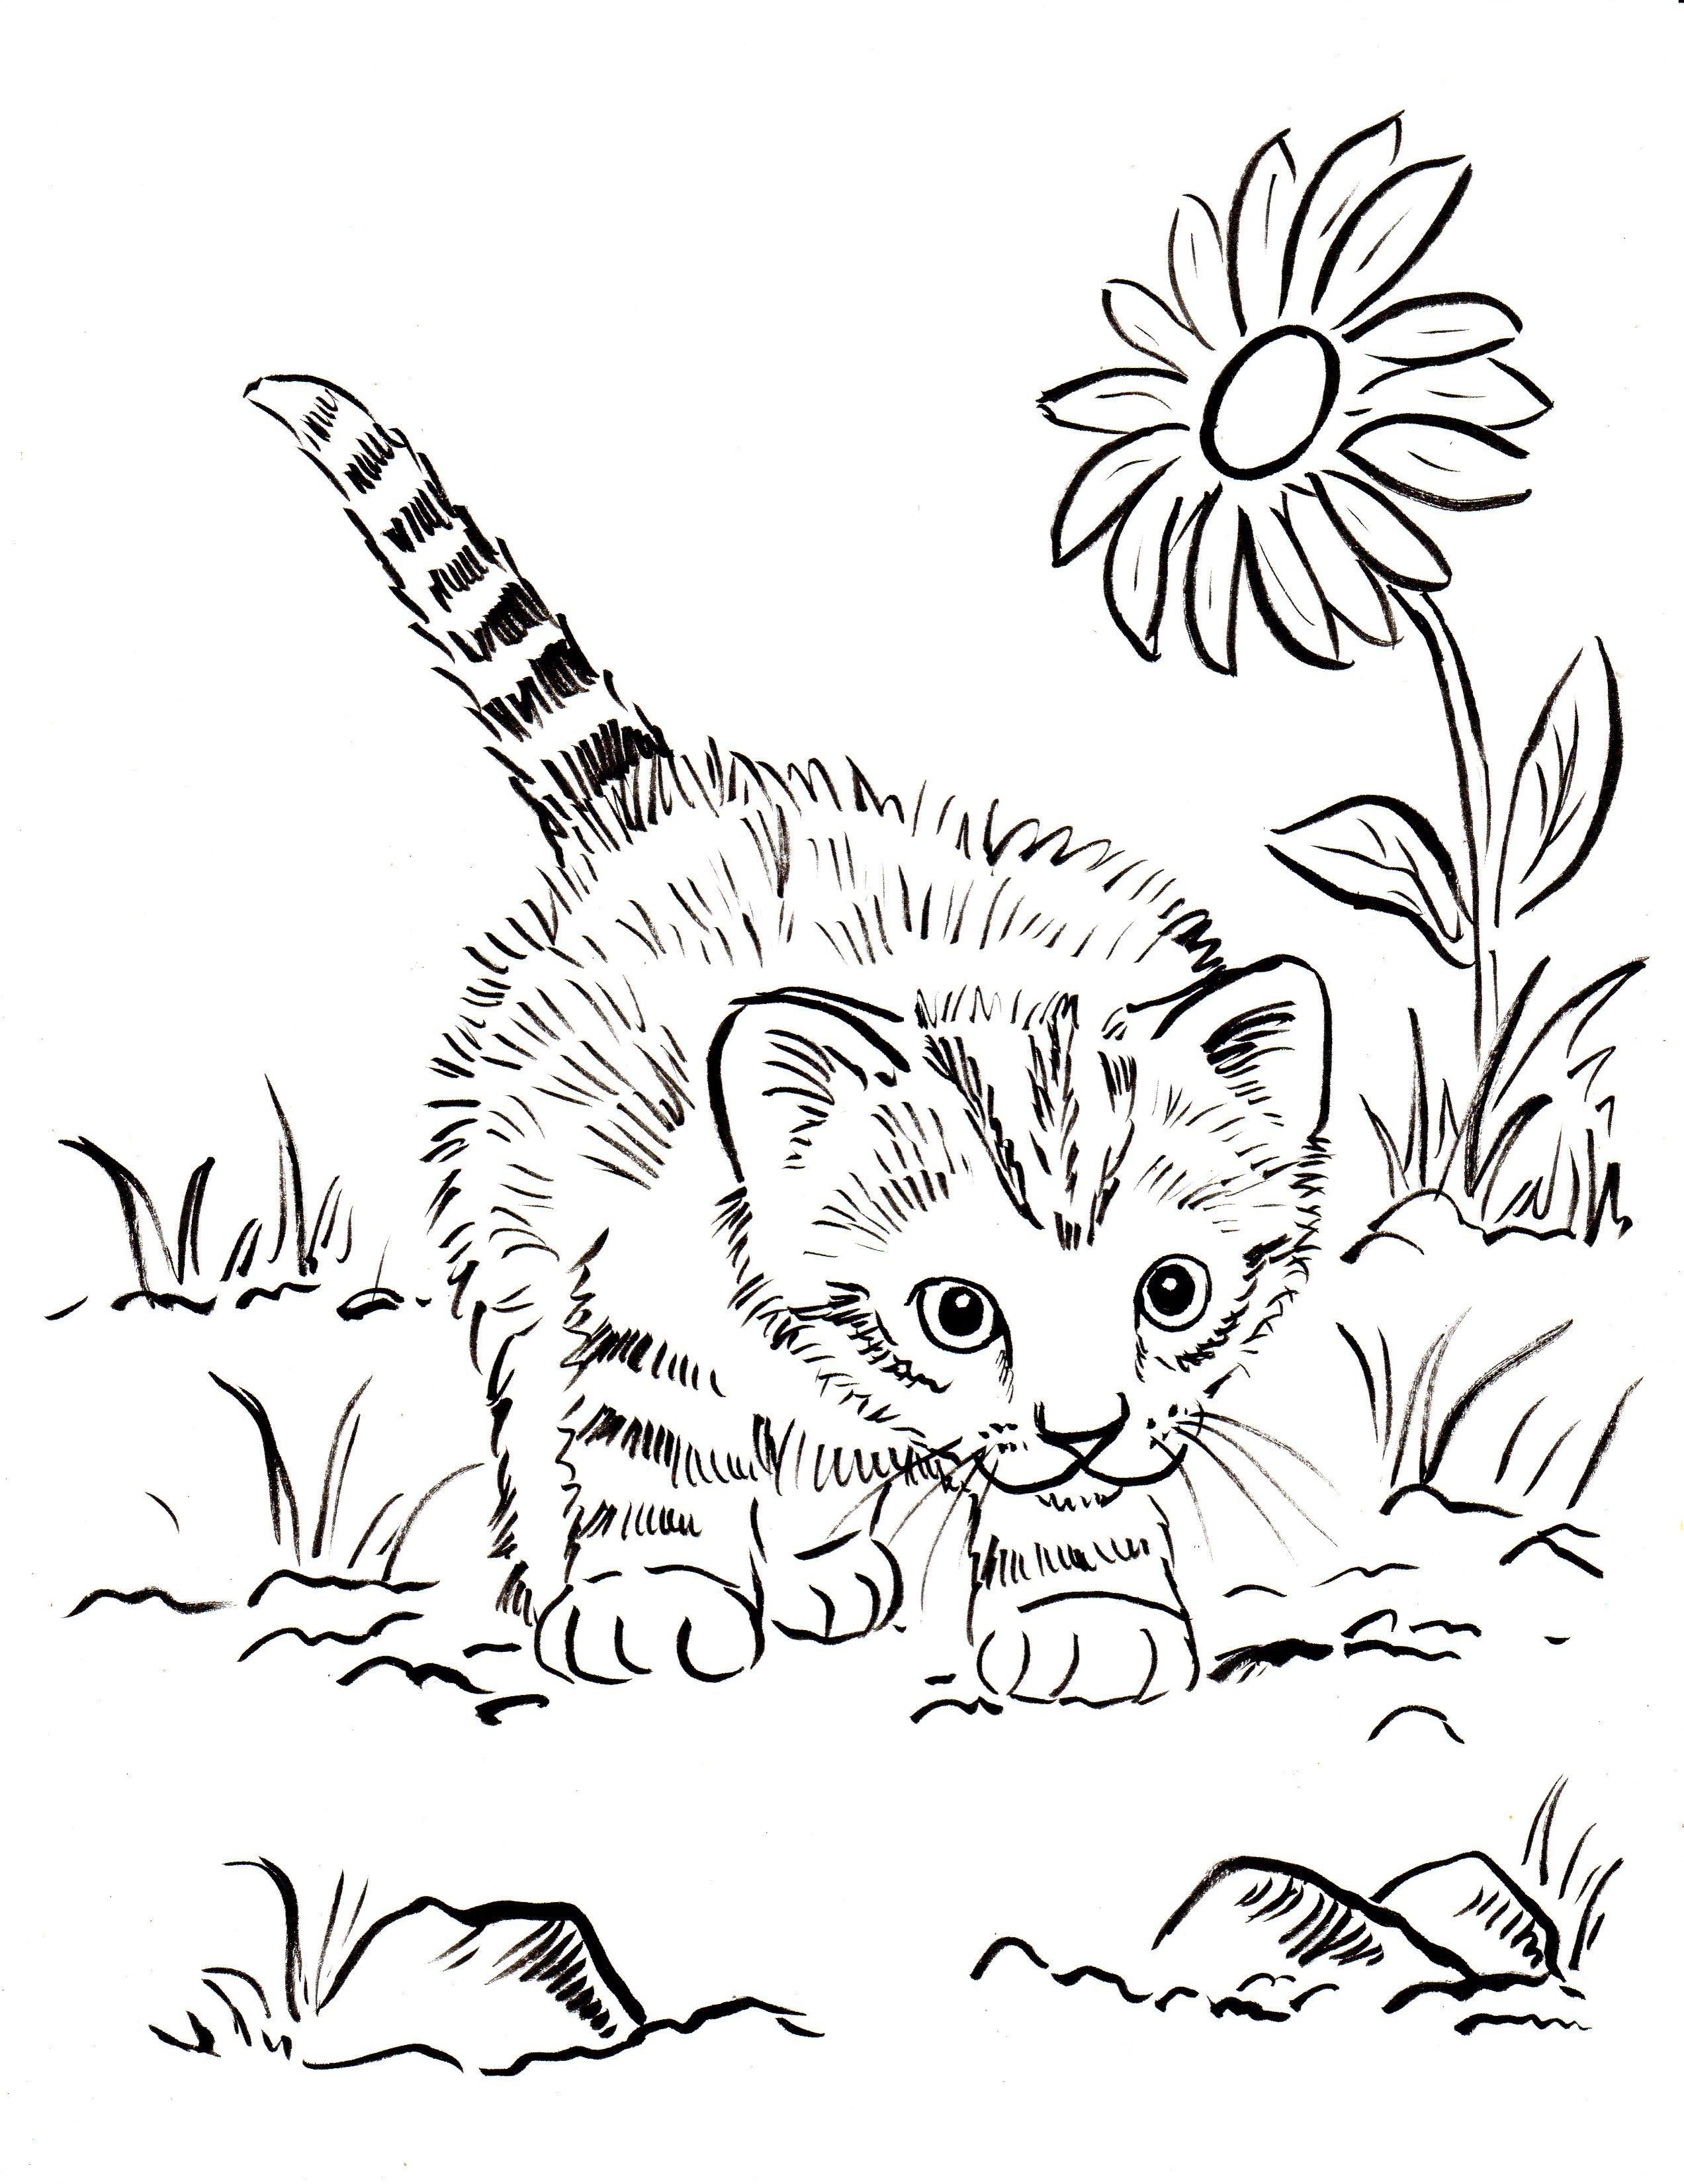 All You Have Ever Wanted To Know About Dogs Cat Coloring Book Kittens Coloring Puppy Coloring Pages